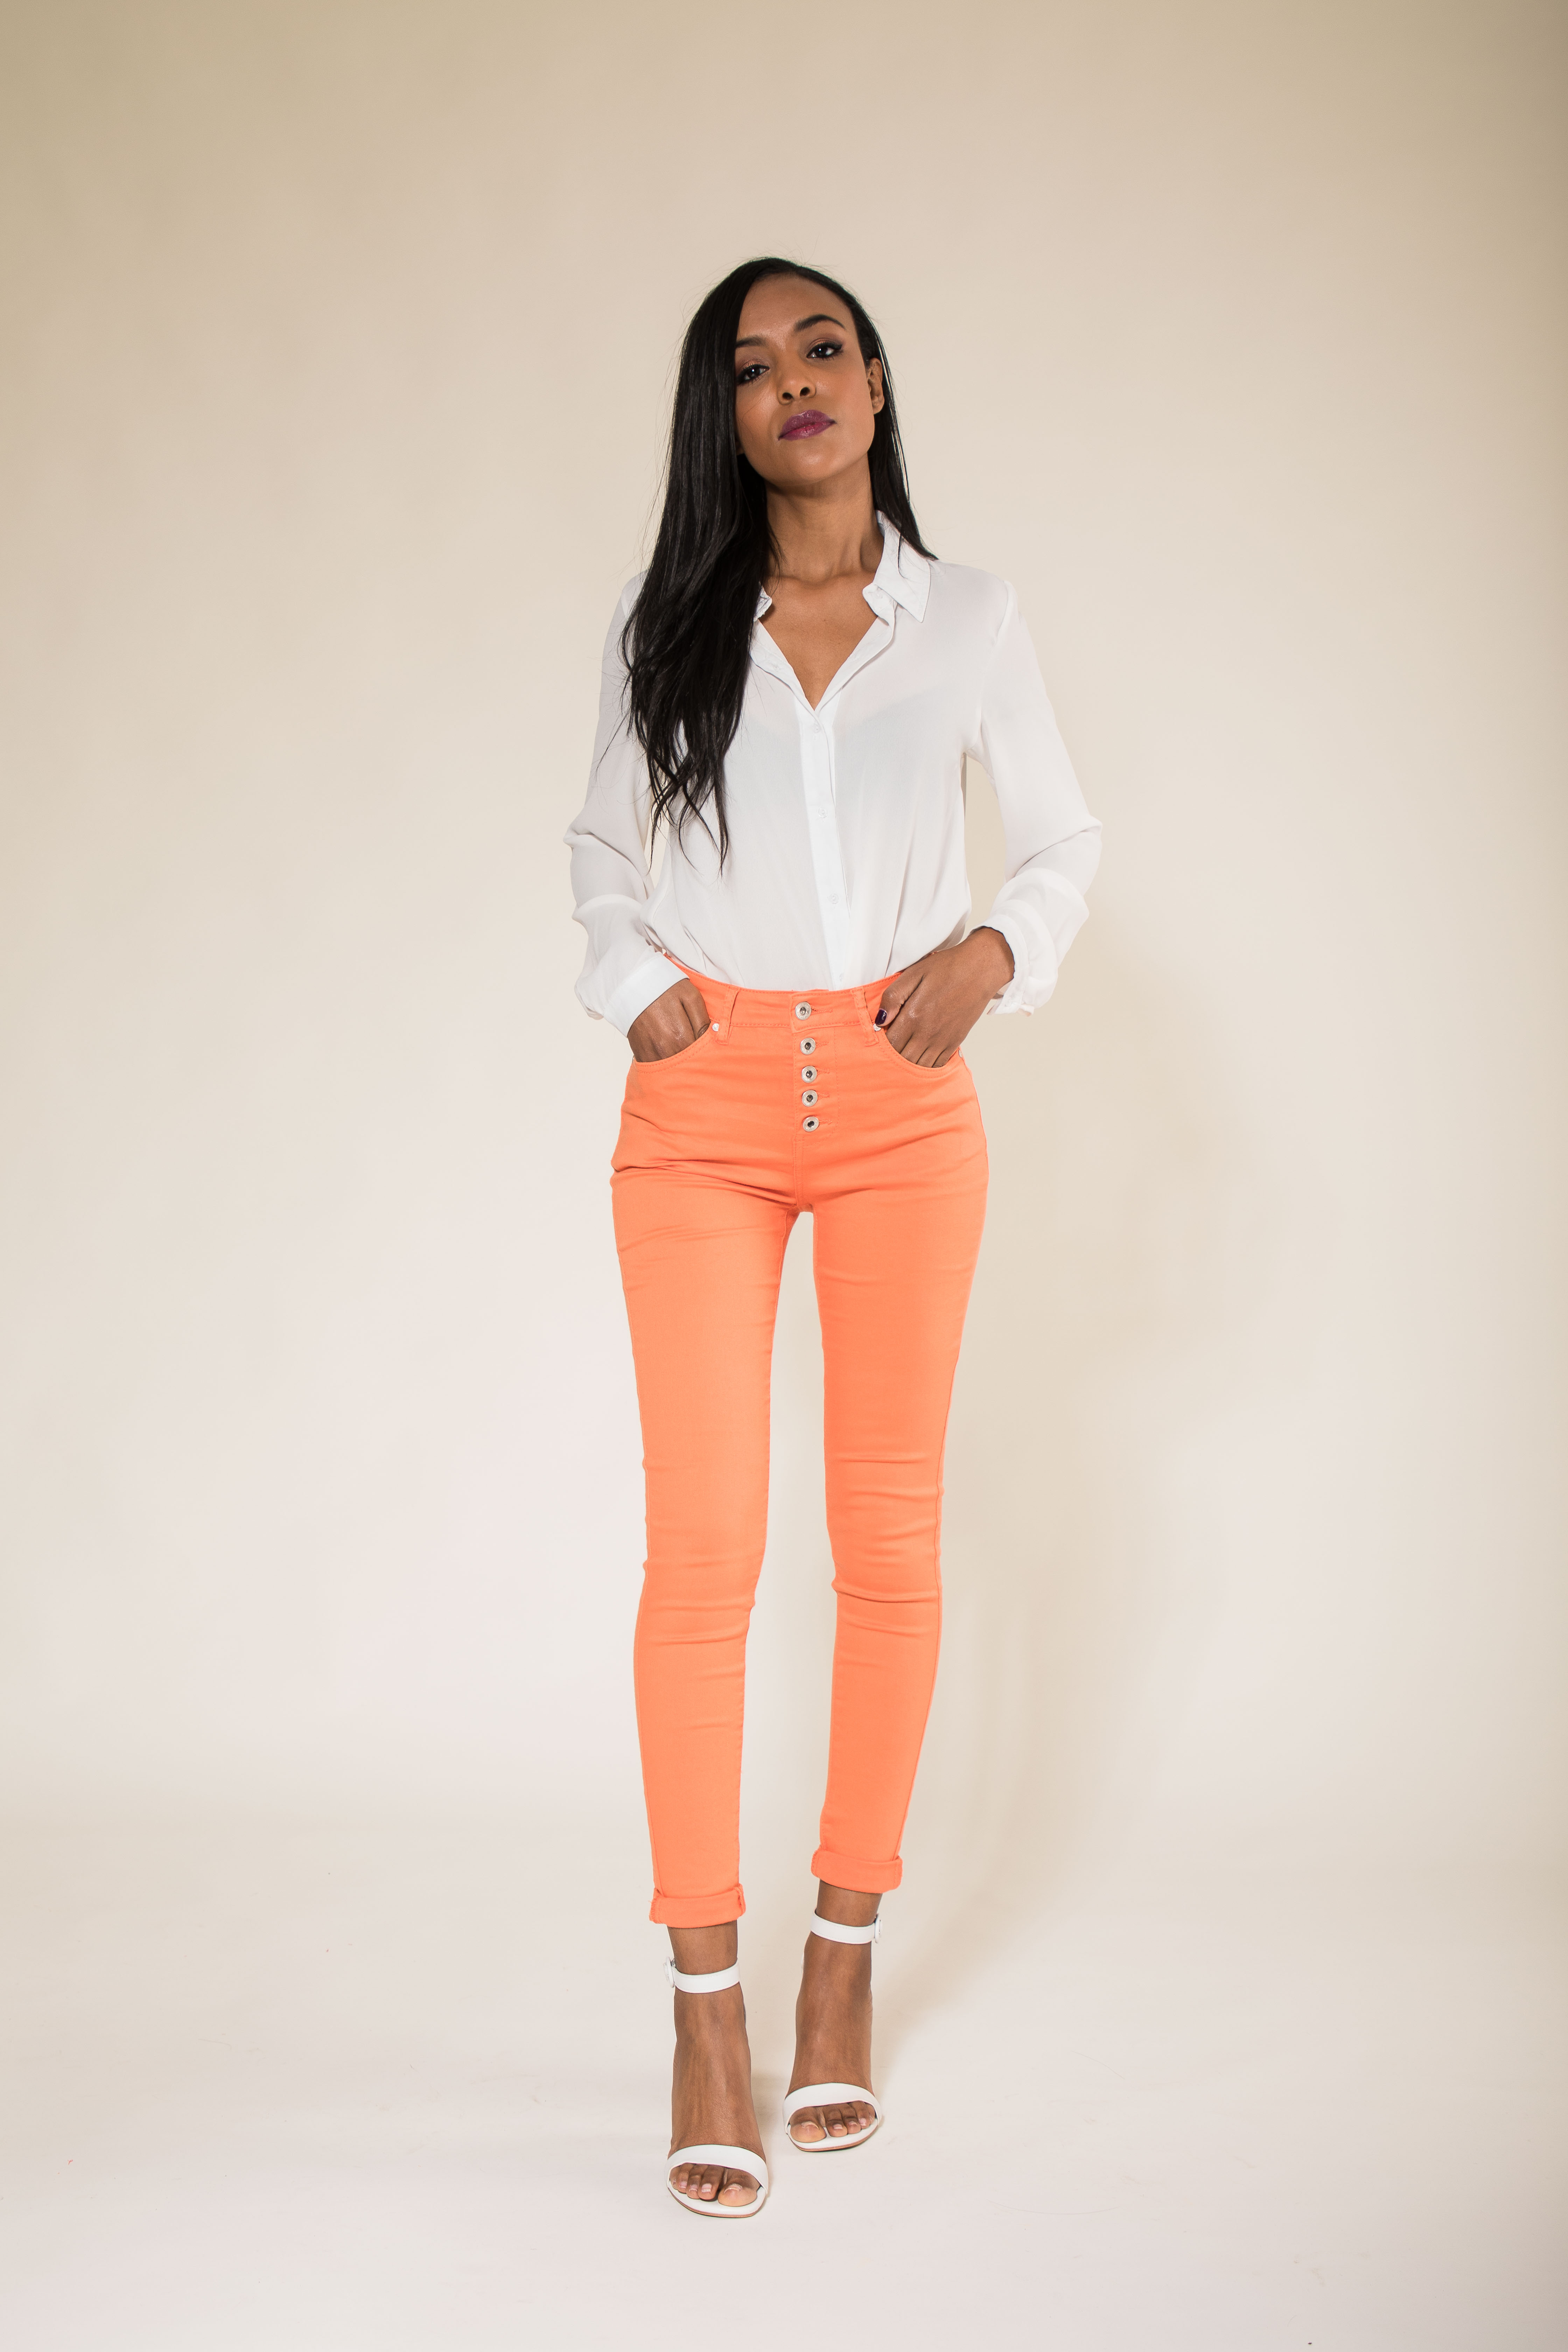 Women-High-Waisted-Jeans-Ladies-Coloured-Stretchy-jeggings-Pants-Size-6-14 thumbnail 28